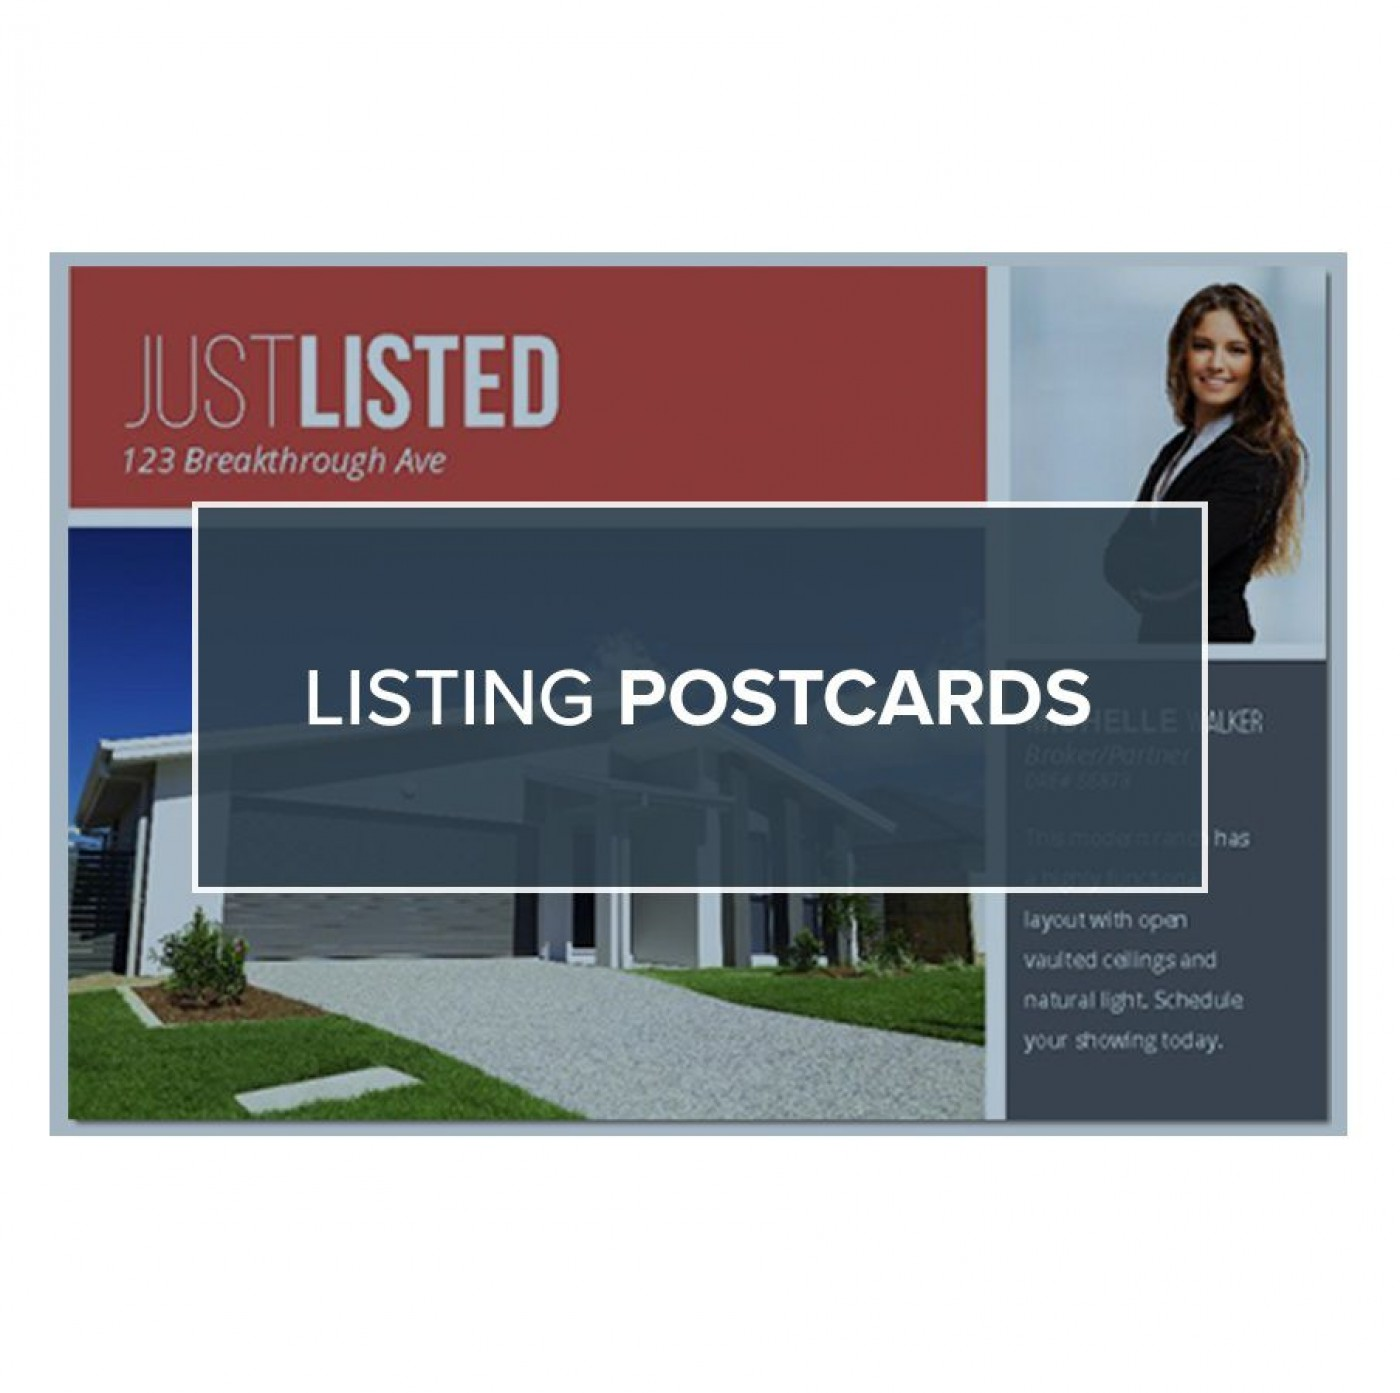 006 Formidable Real Estate Postcard Template Photo  Agent For Photoshop Investor1400